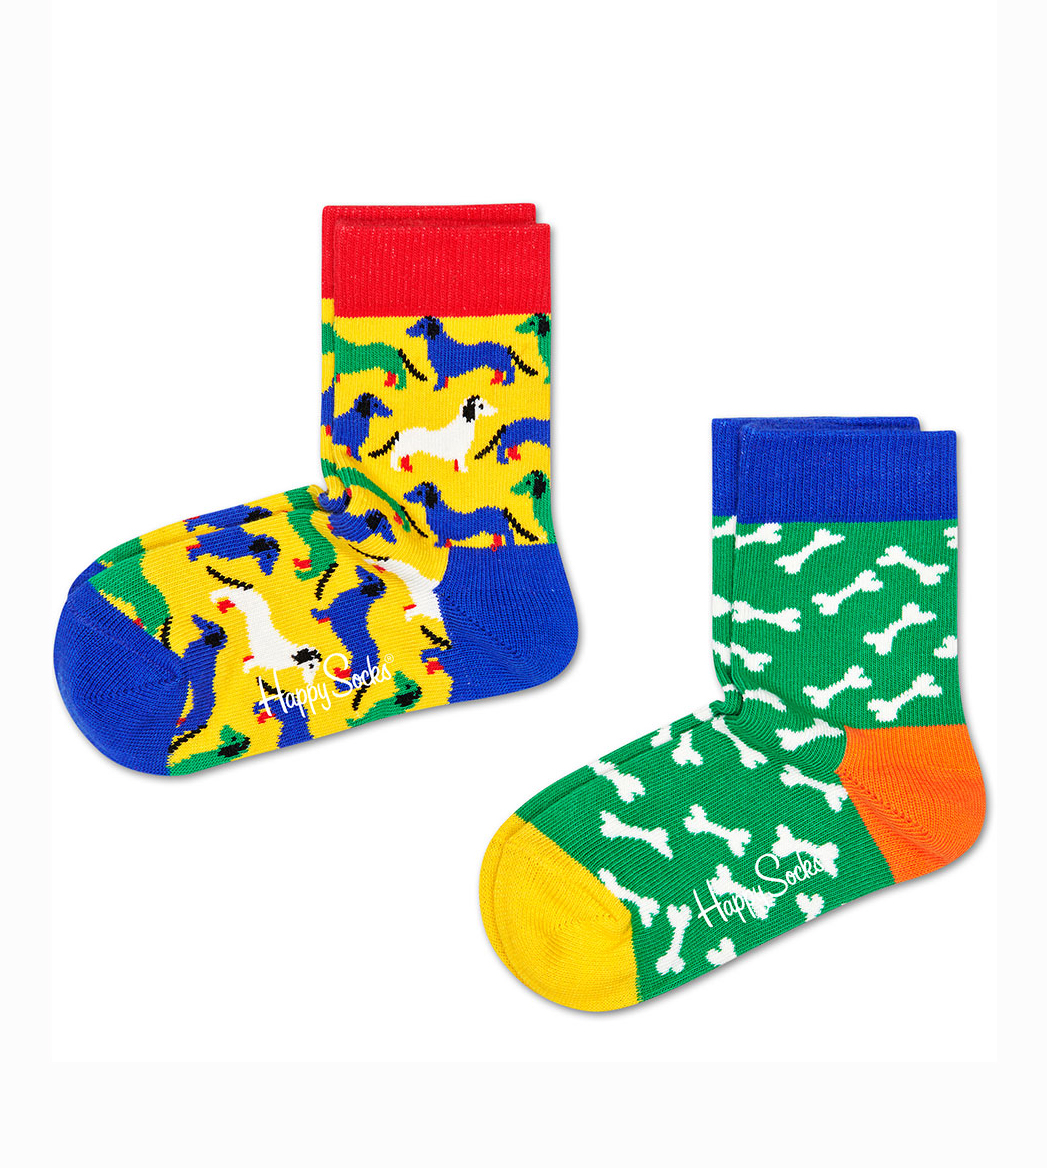 Kids Dog Socks - 2 pack 1